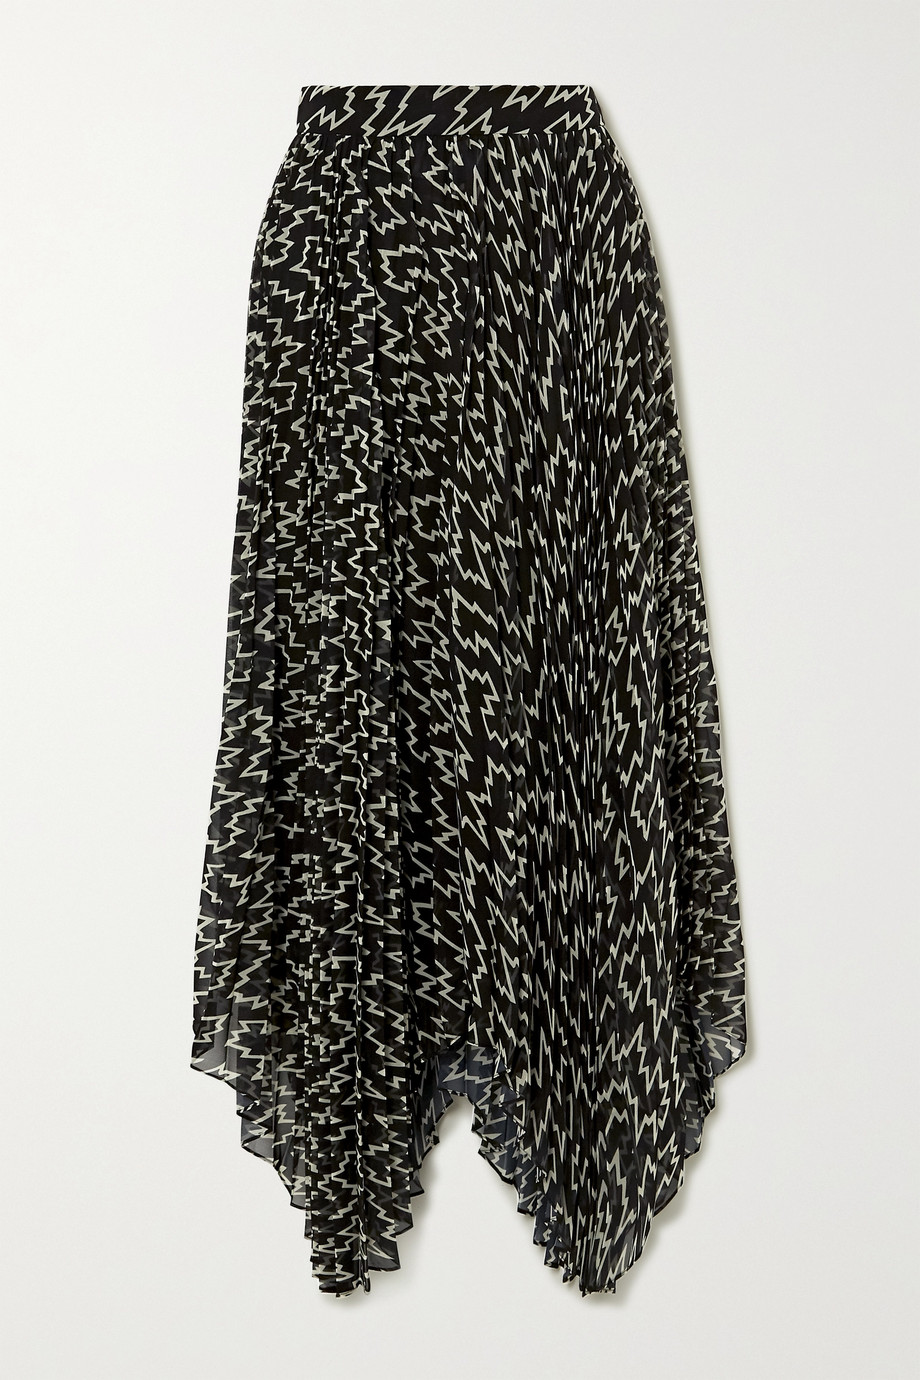 Isabel Marant Alena asymmetric pleated printed chiffon midi skirt